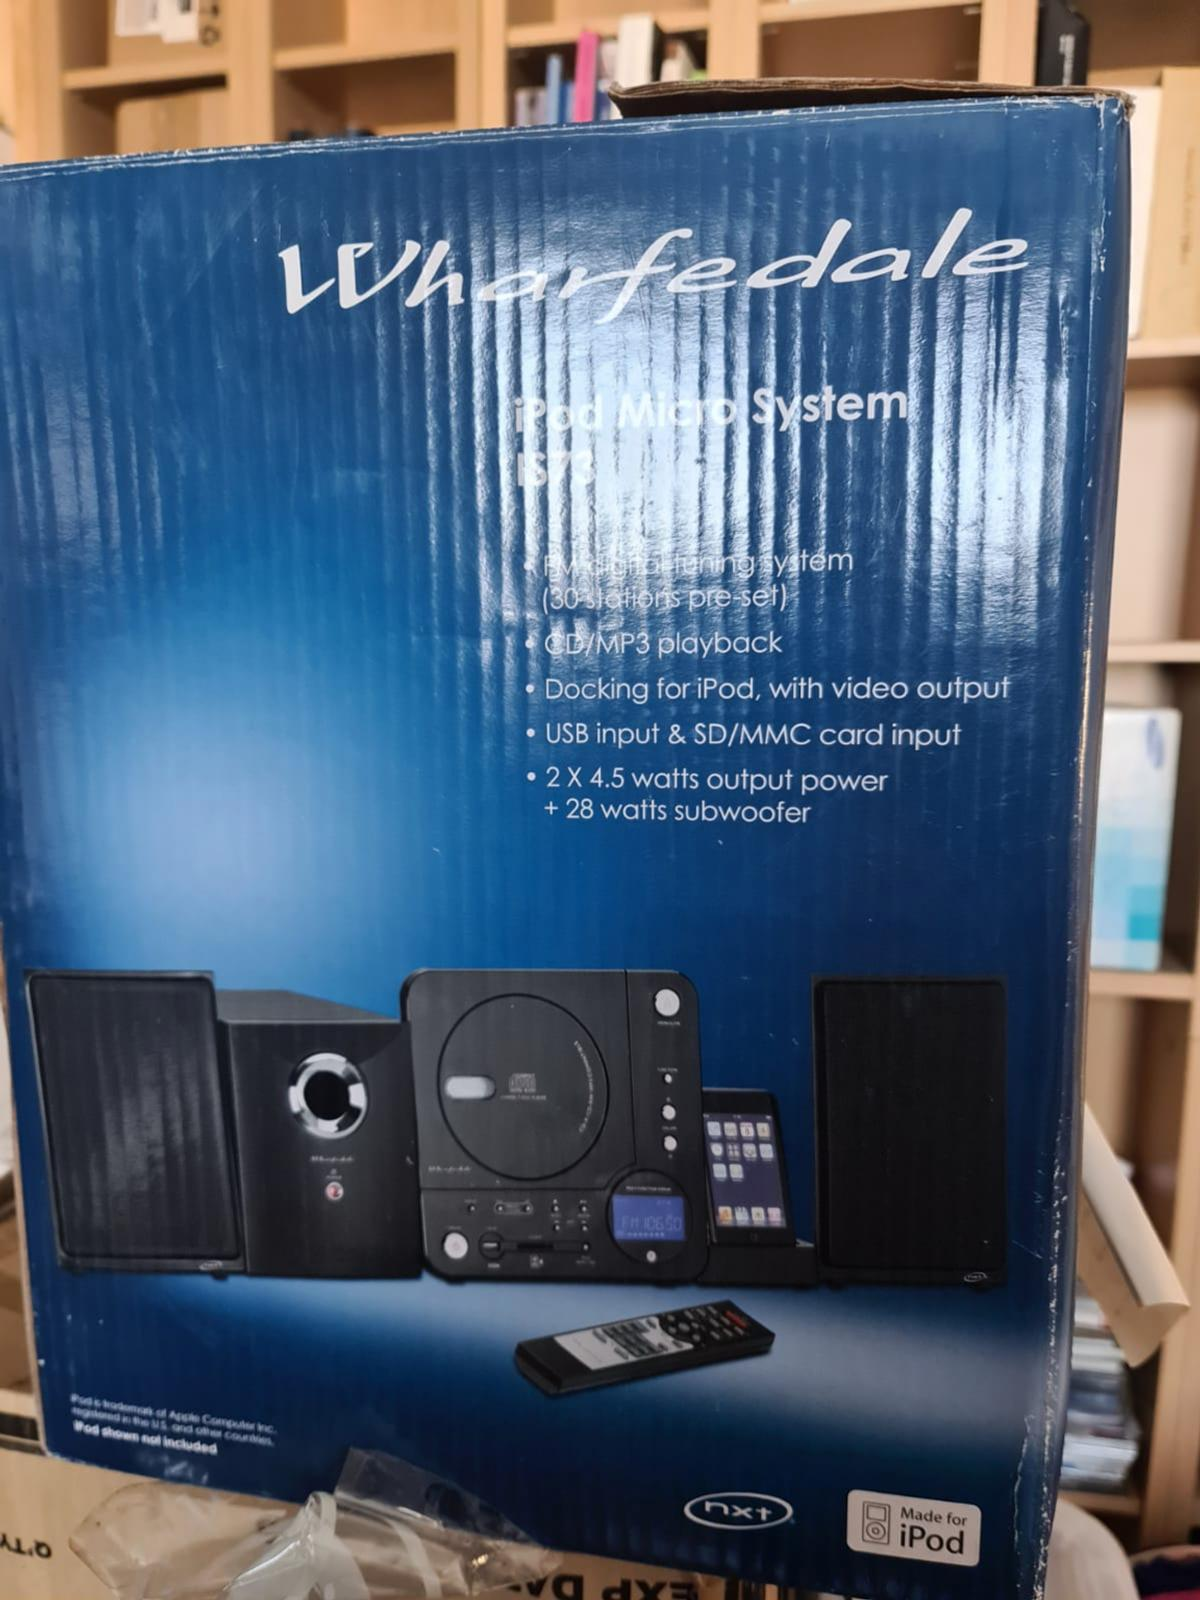 good condition stereo system with cd player and ipod docking station in original box. collection only